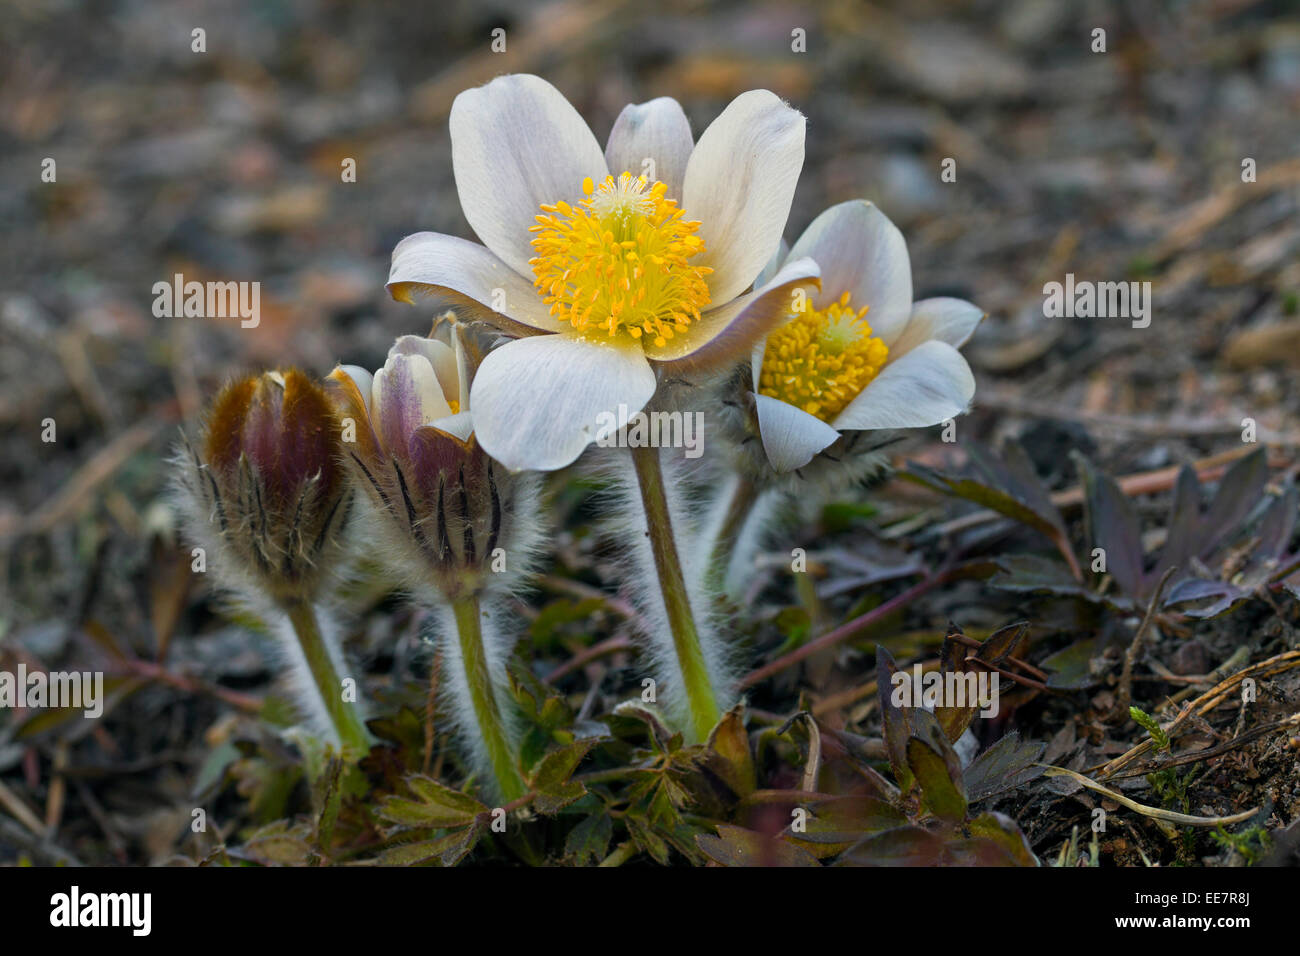 Spring pasqueflowers / arctic violets / lady of the snows / spring anemones (Pulsatilla vernalis) in flower in spring - Stock Image